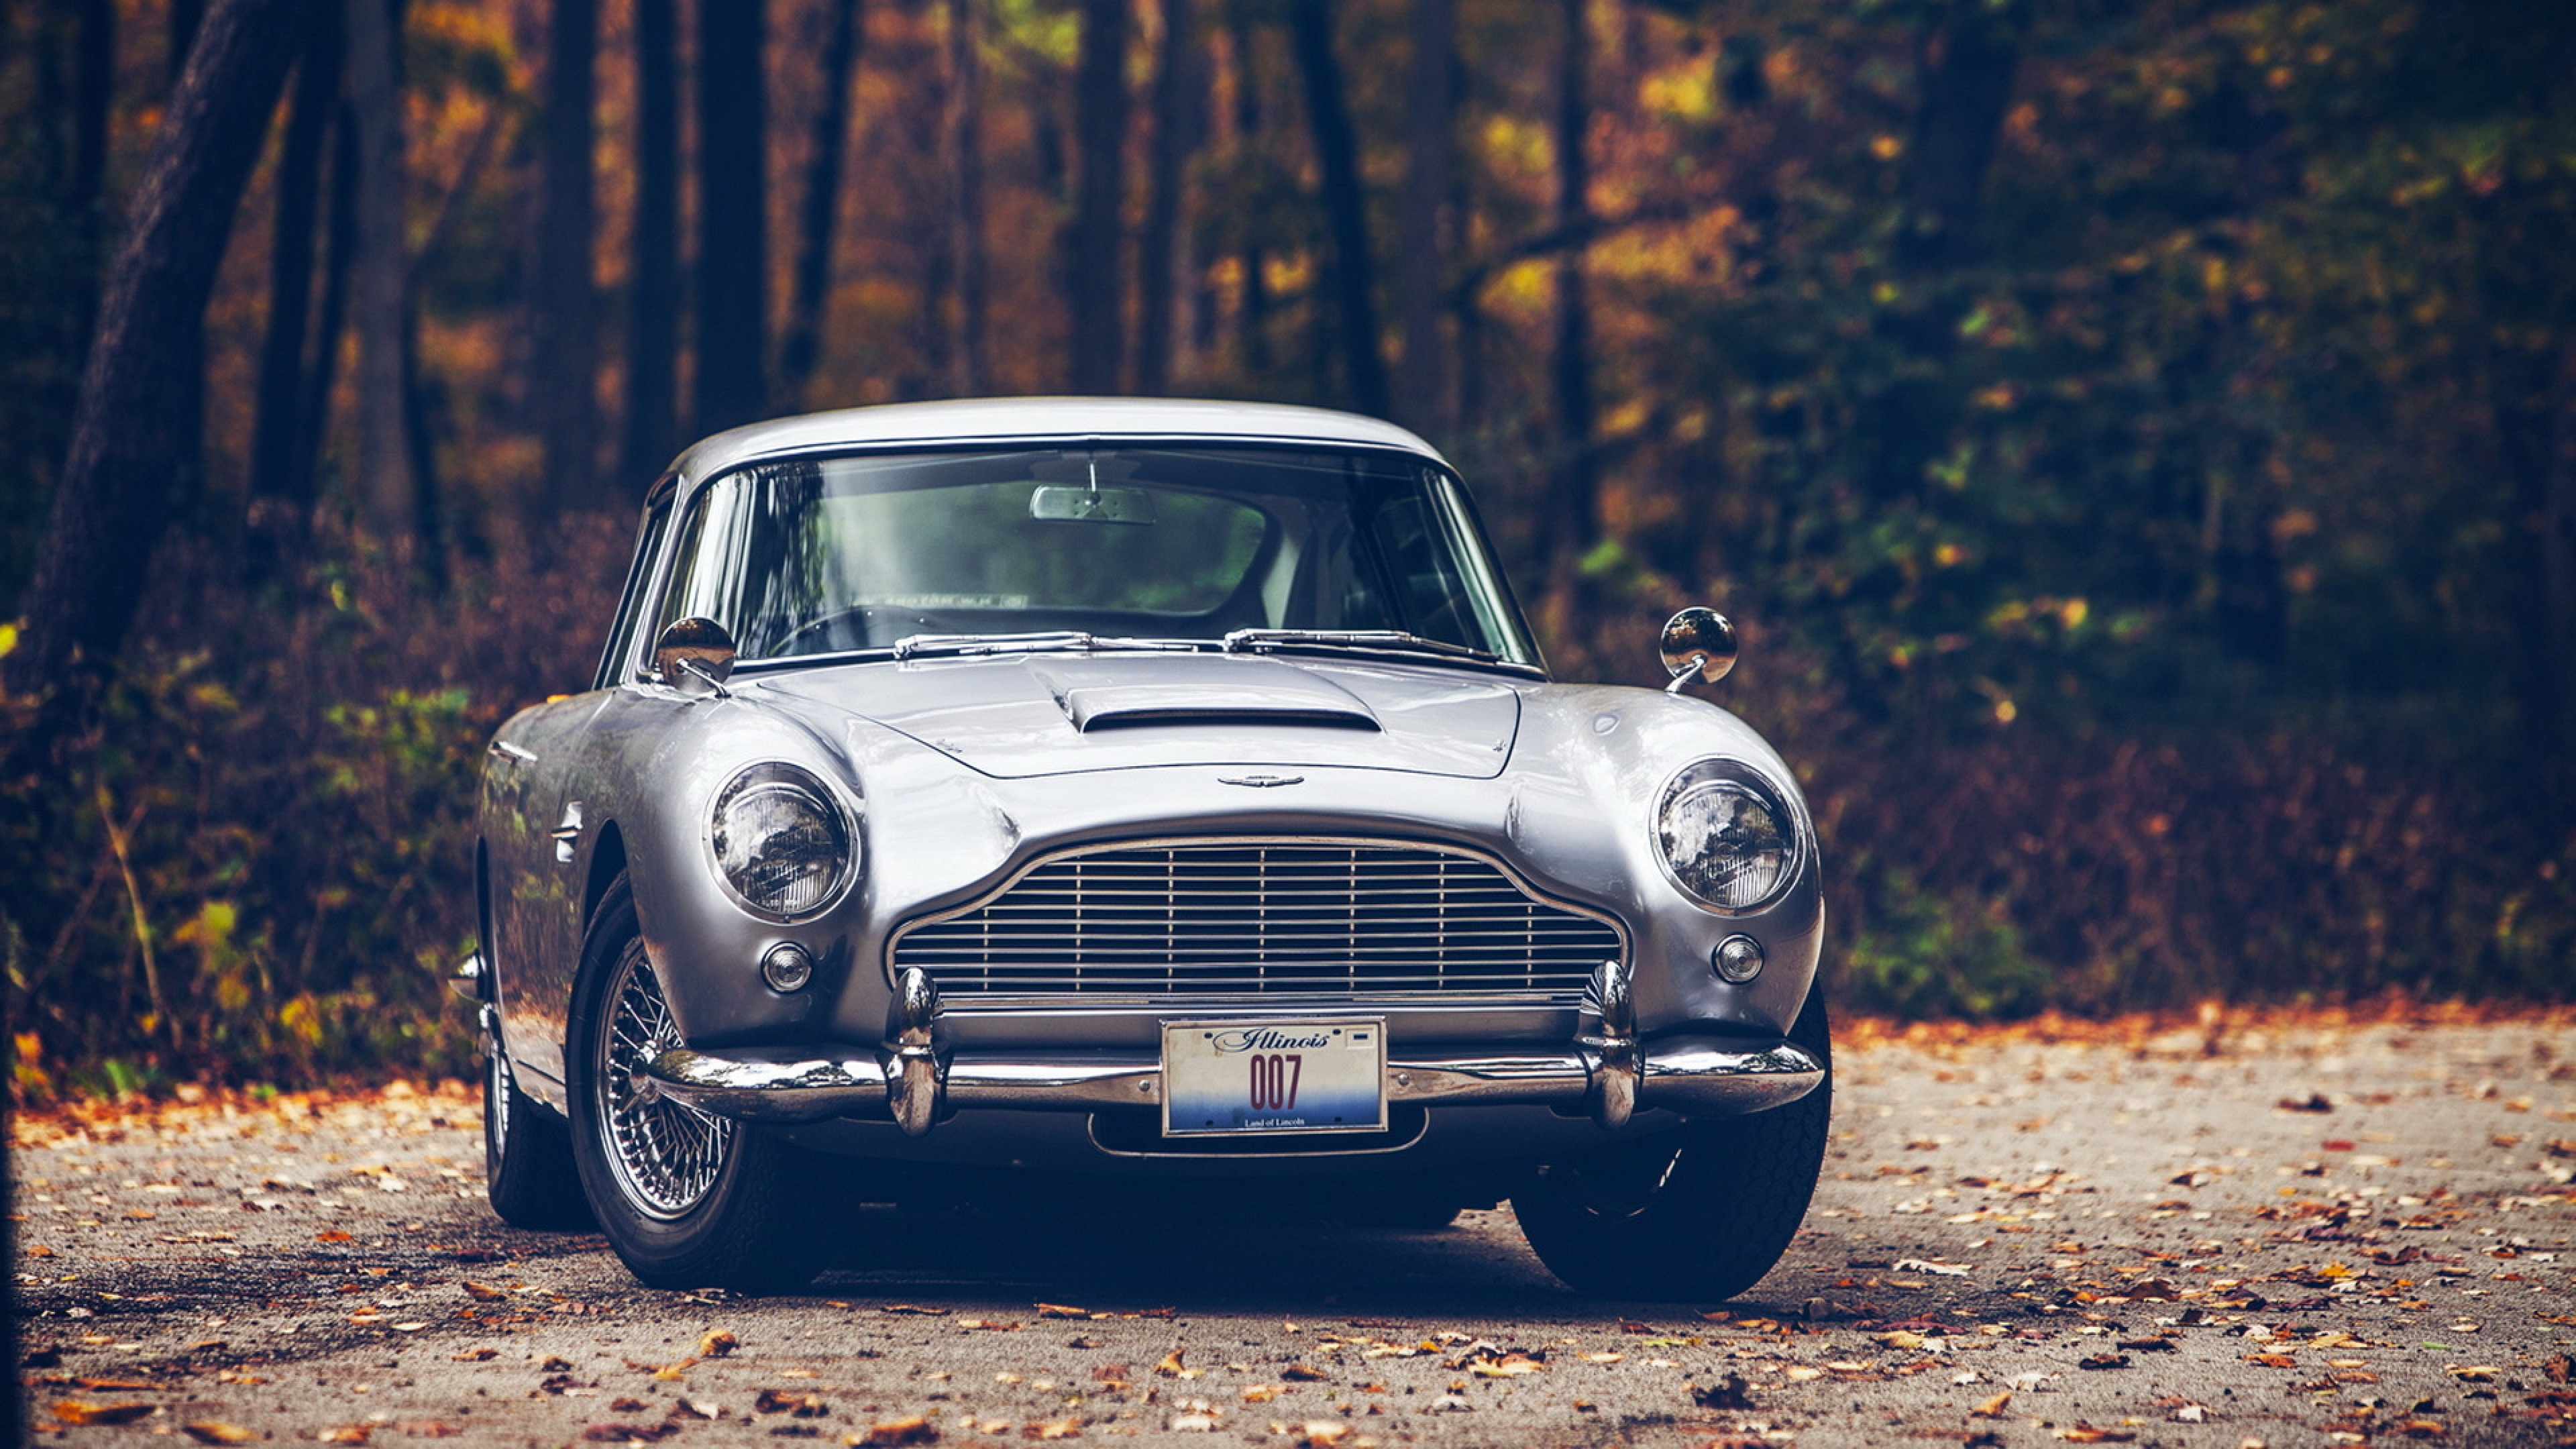 1920x1080 aston martin db5 laptop full hd 1080p hd 4k wallpapers